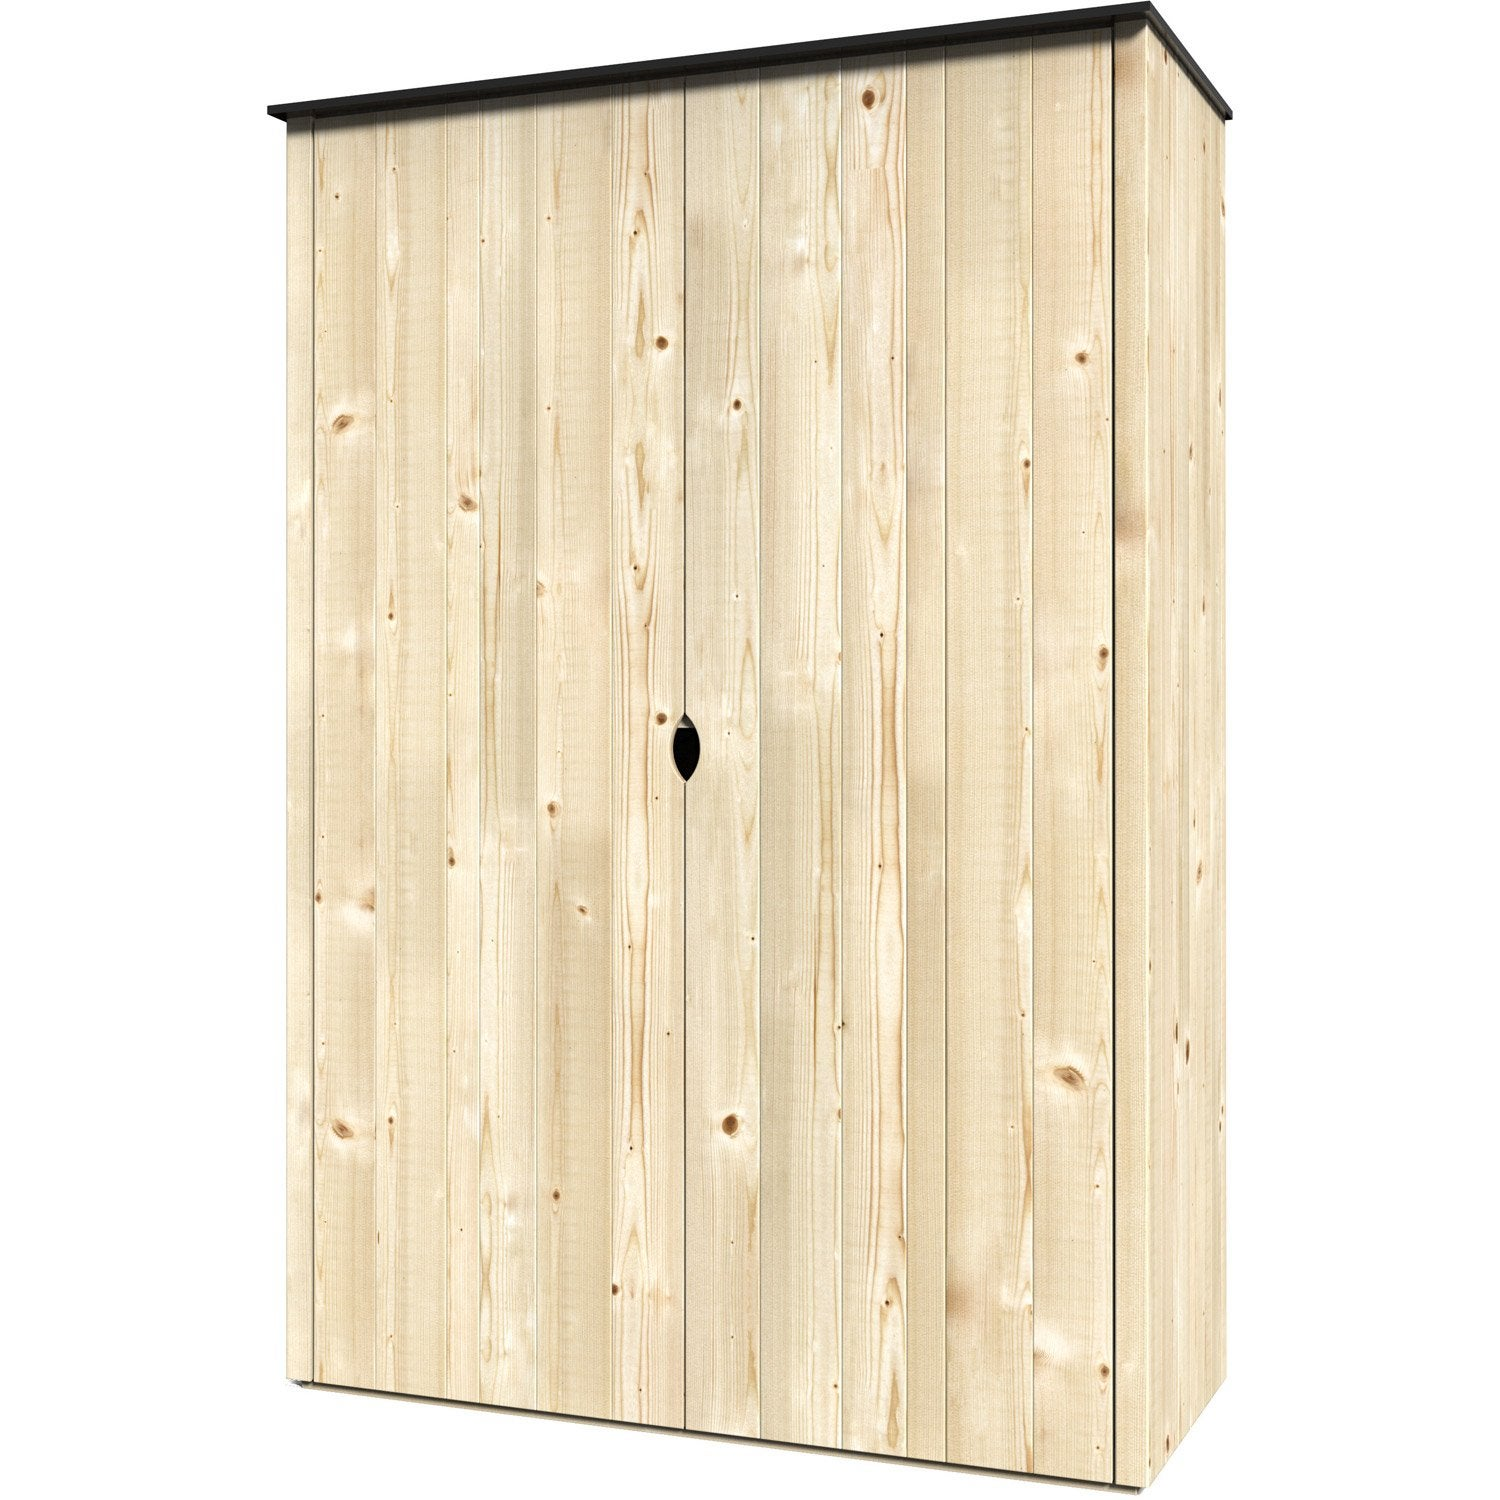 armoire de jardin bois vertigo naturelle x h 1 8 x cm leroy merlin. Black Bedroom Furniture Sets. Home Design Ideas